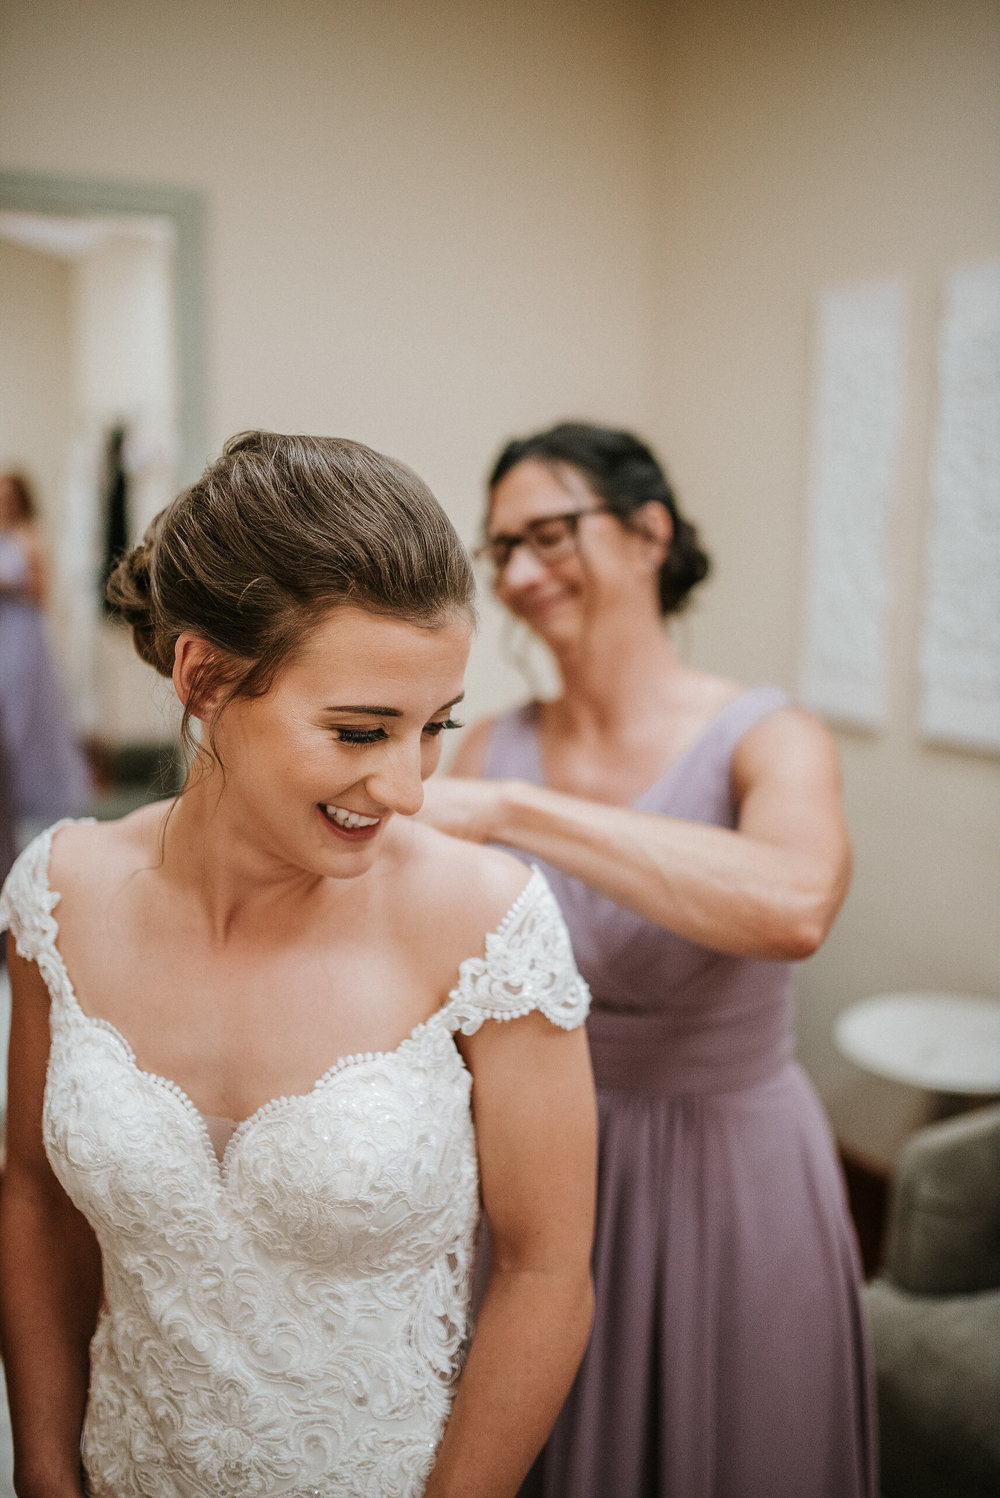 Mom buttoning bride's dress